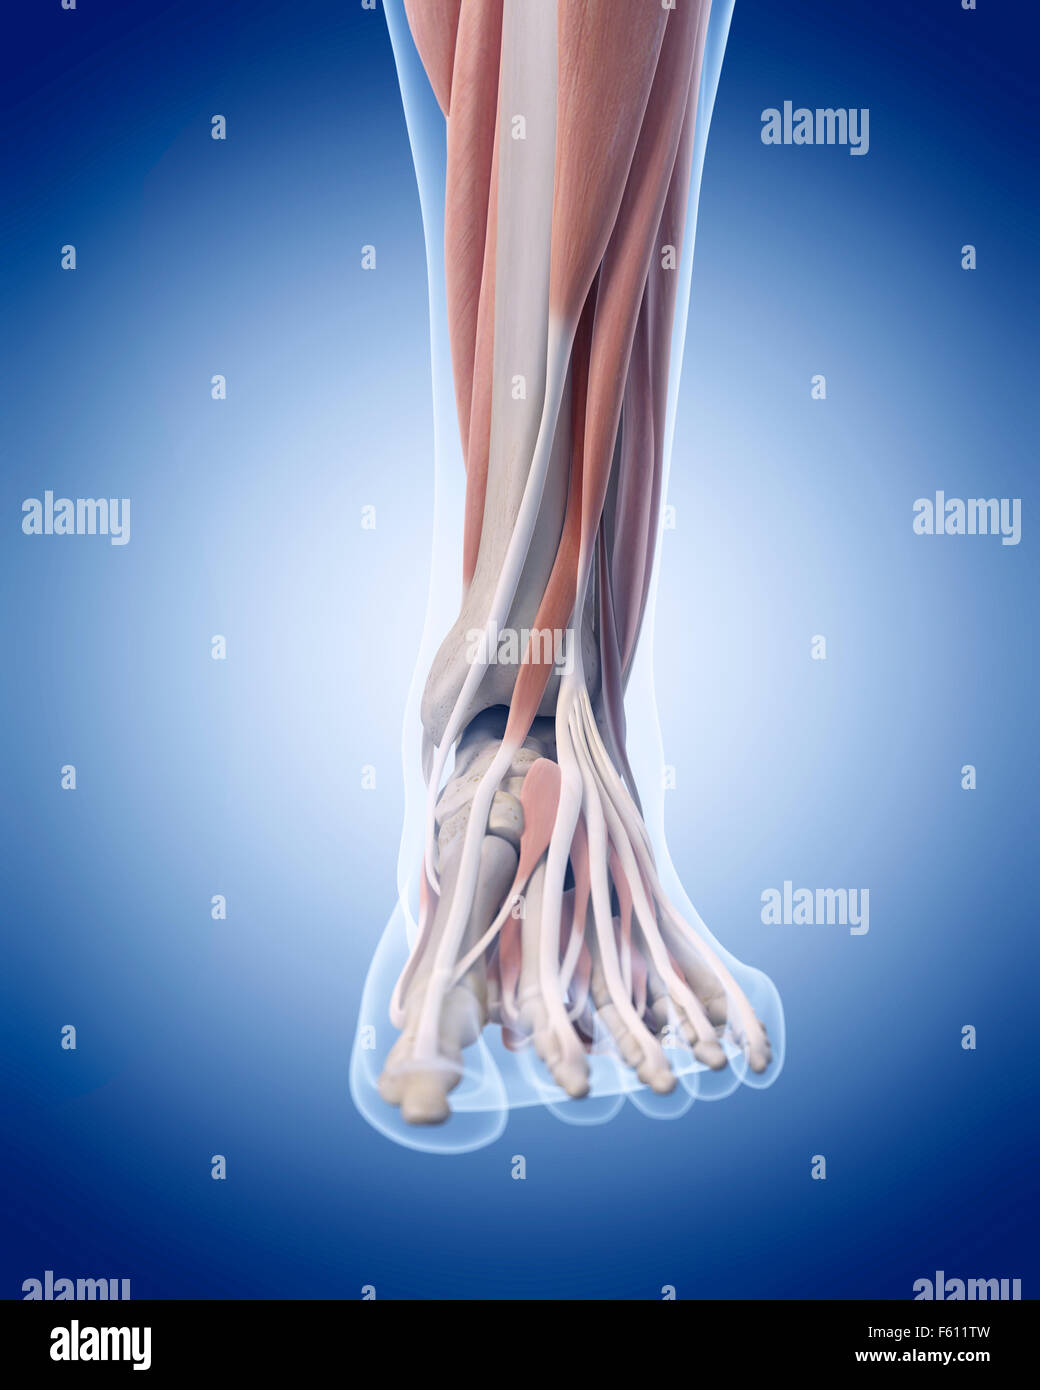 Human Ankle Muscles Stock Photos & Human Ankle Muscles Stock Images ...